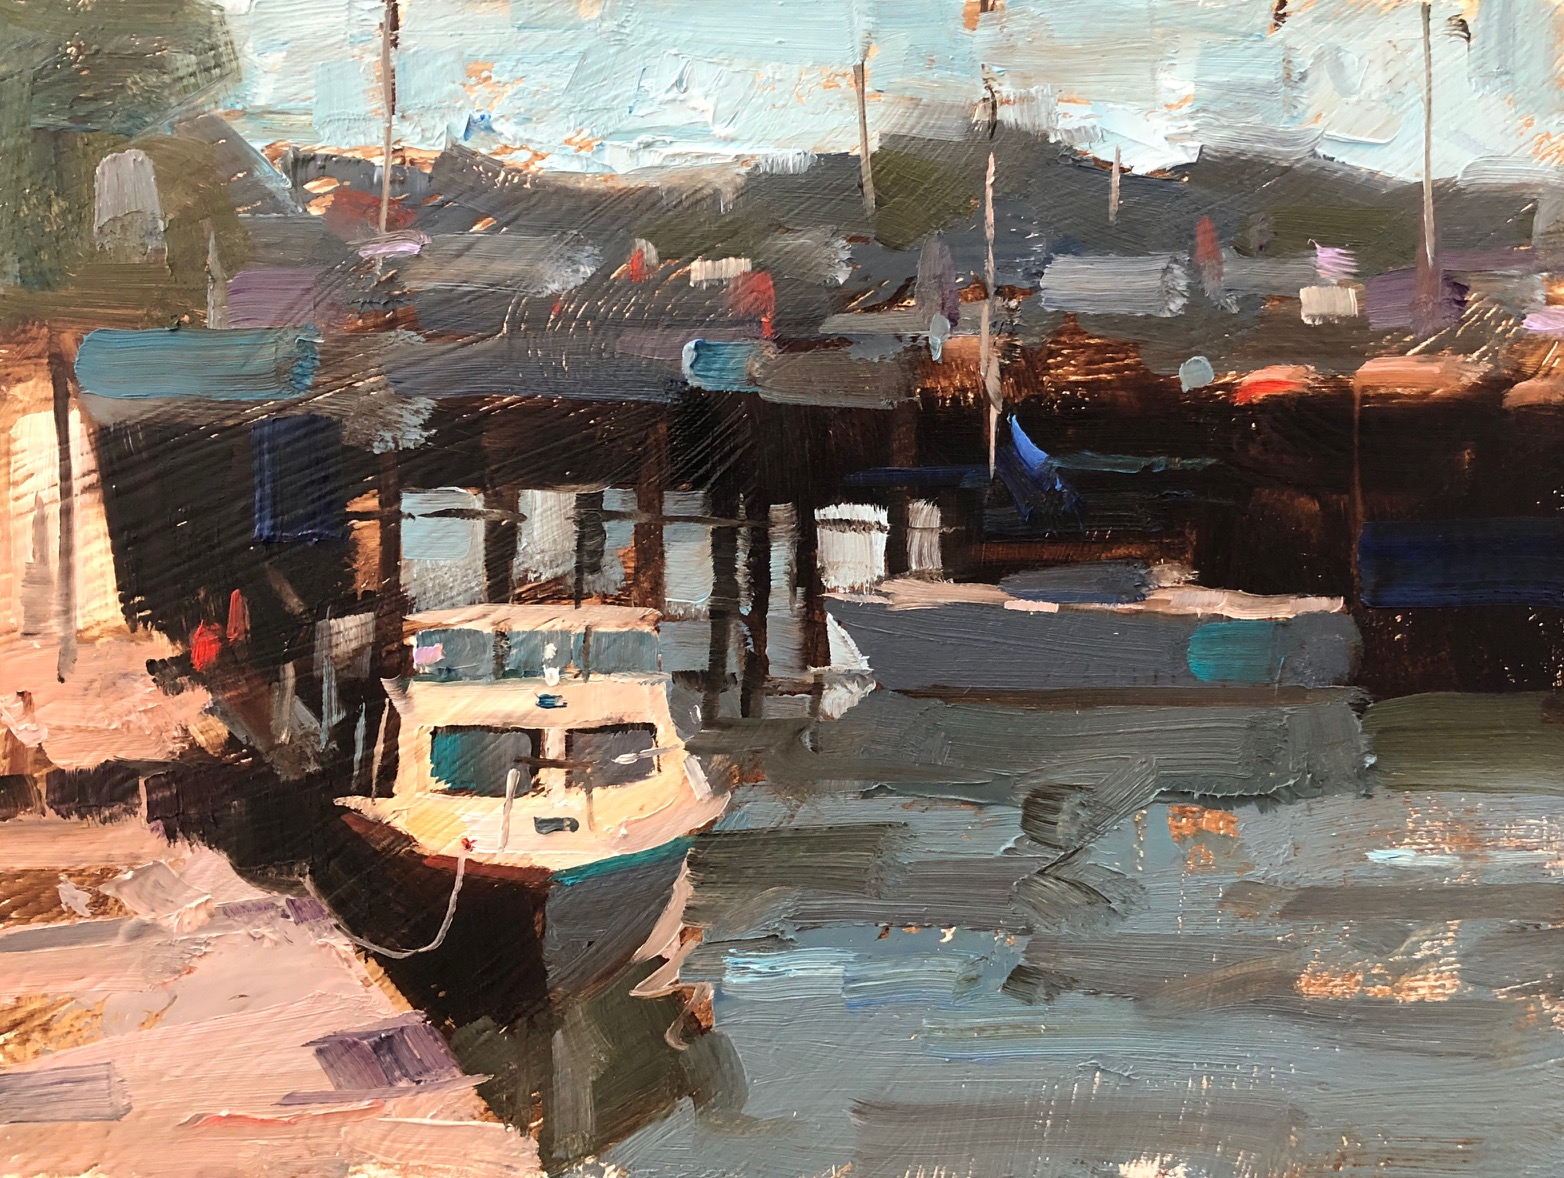 Qiang Huang, demo | Painting still life, City scape